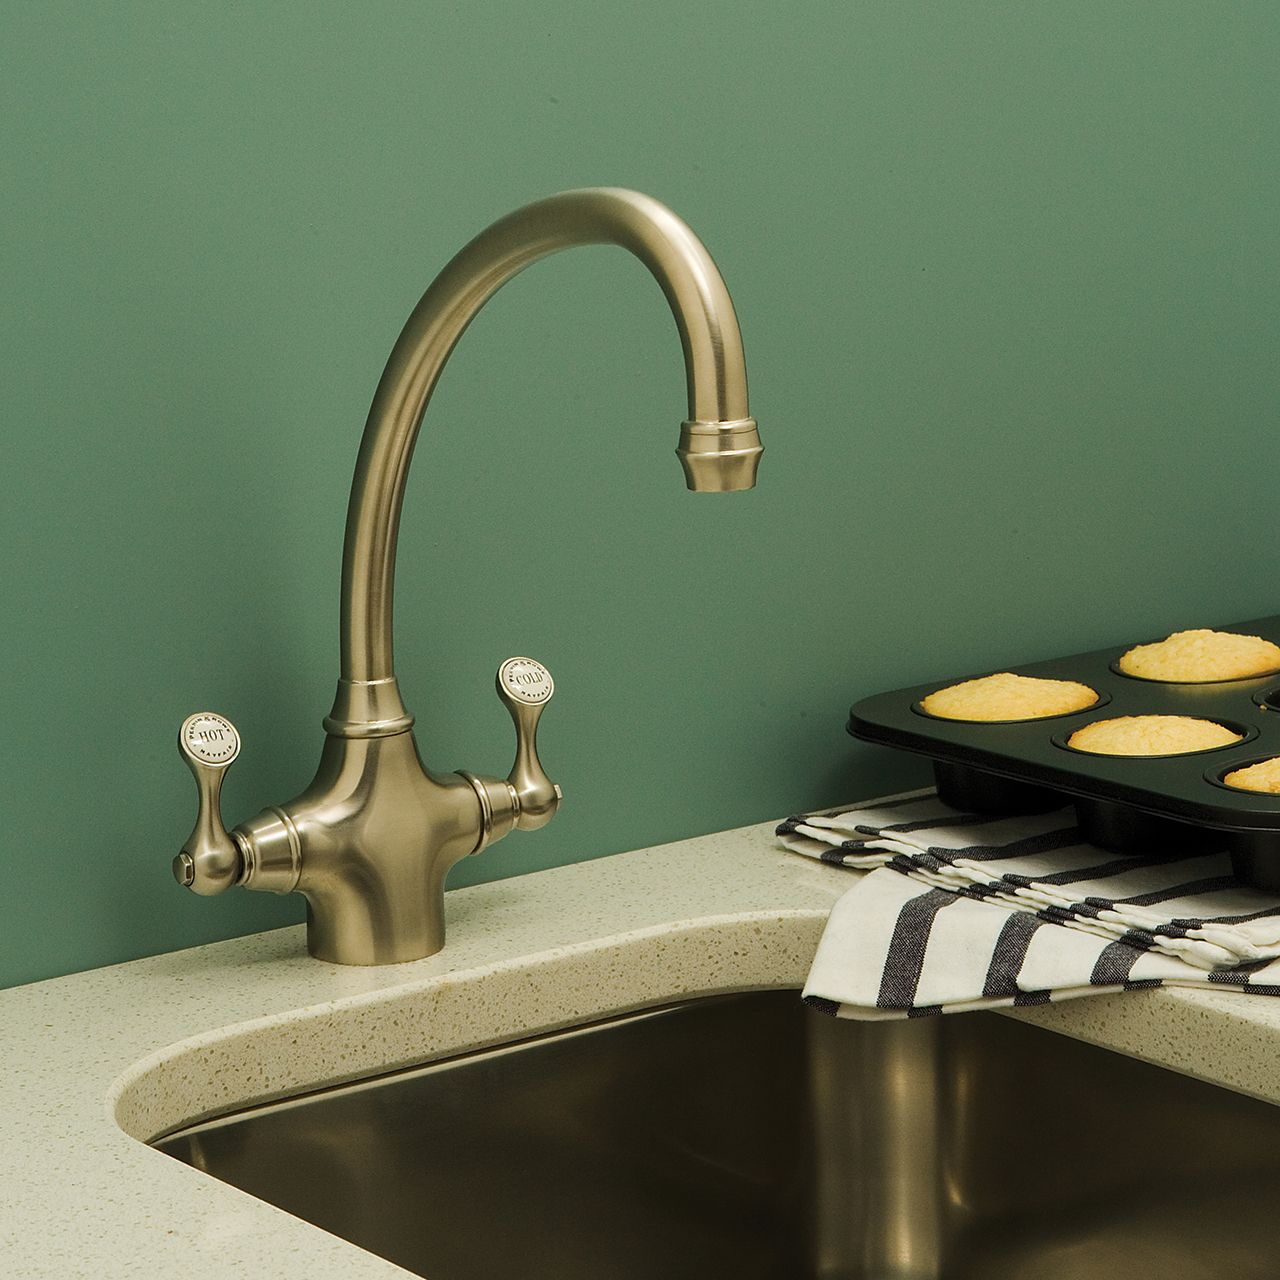 Perrin & Rowe Etruscan Sink Mixer in the Pewter finish, supplied ...